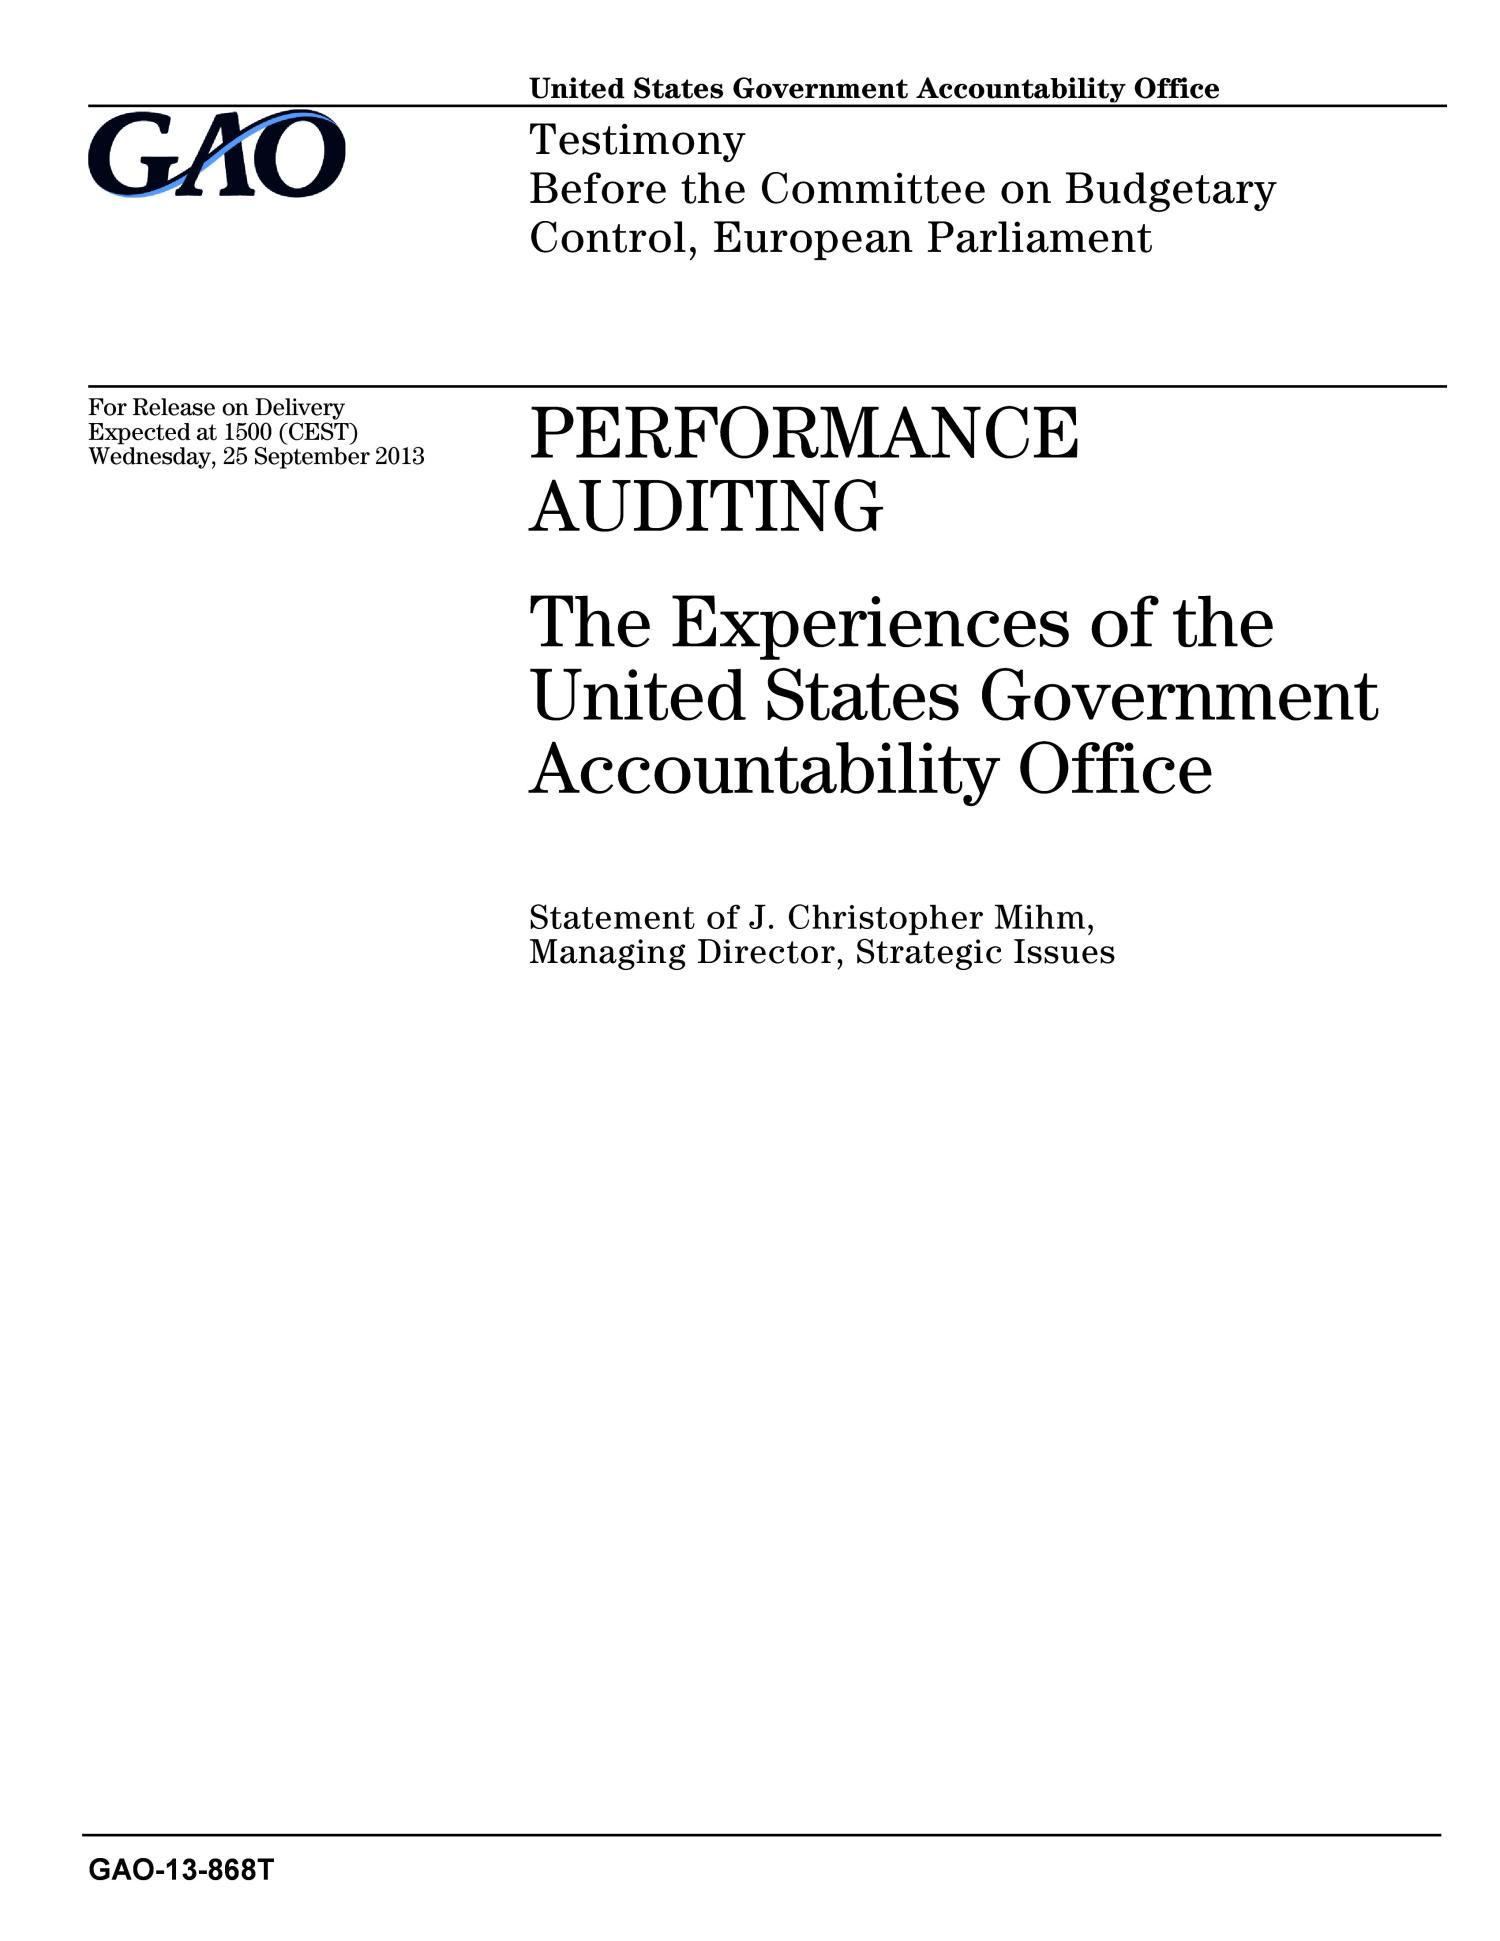 Performance Auditing The Experiences of the United States